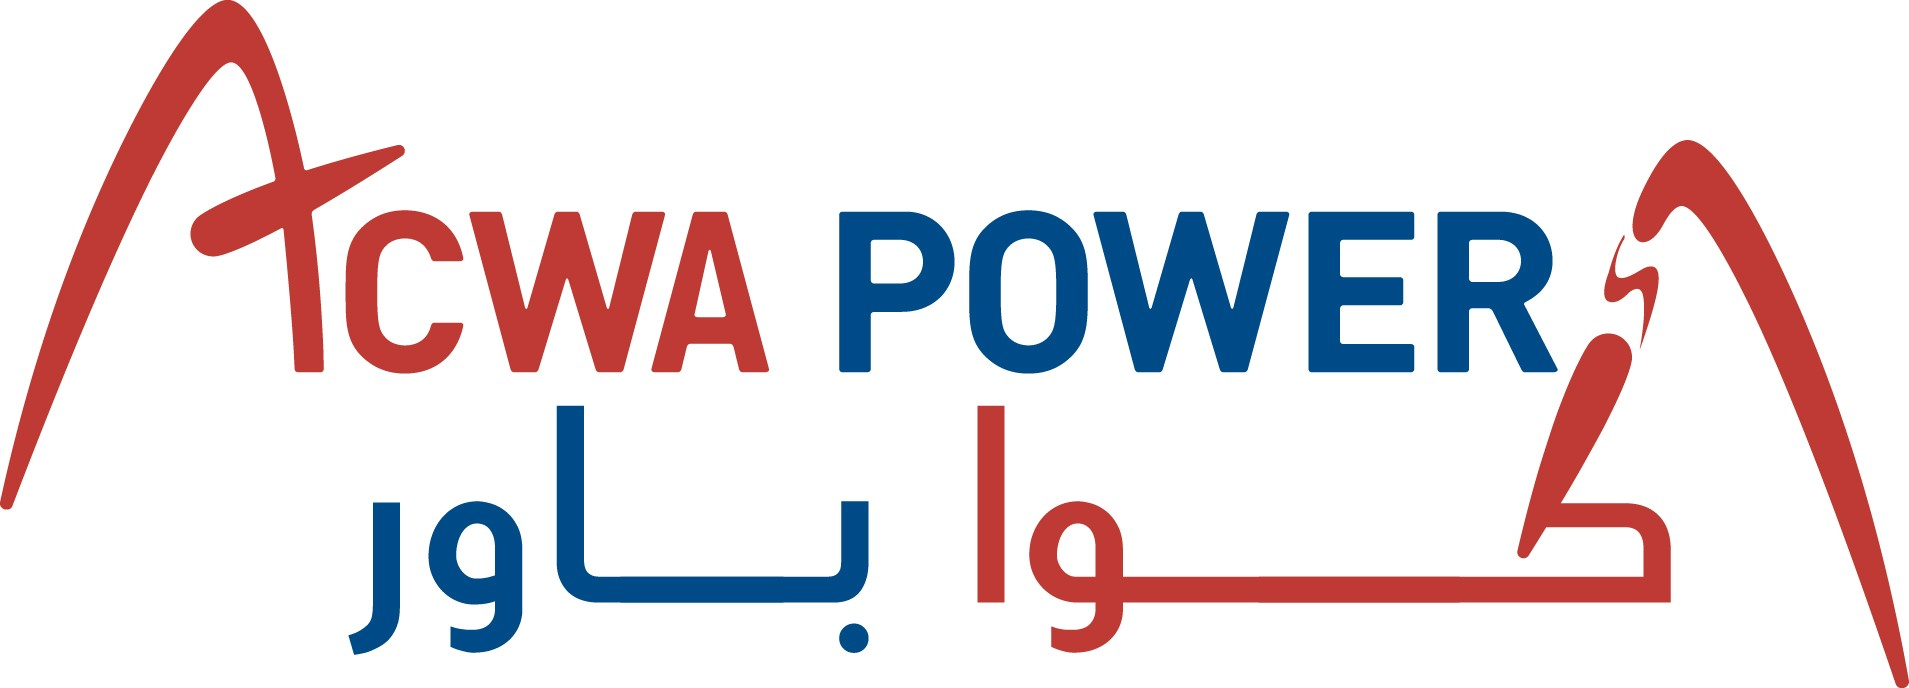 ACWA Power - DUAL LANGUAGE LOGO